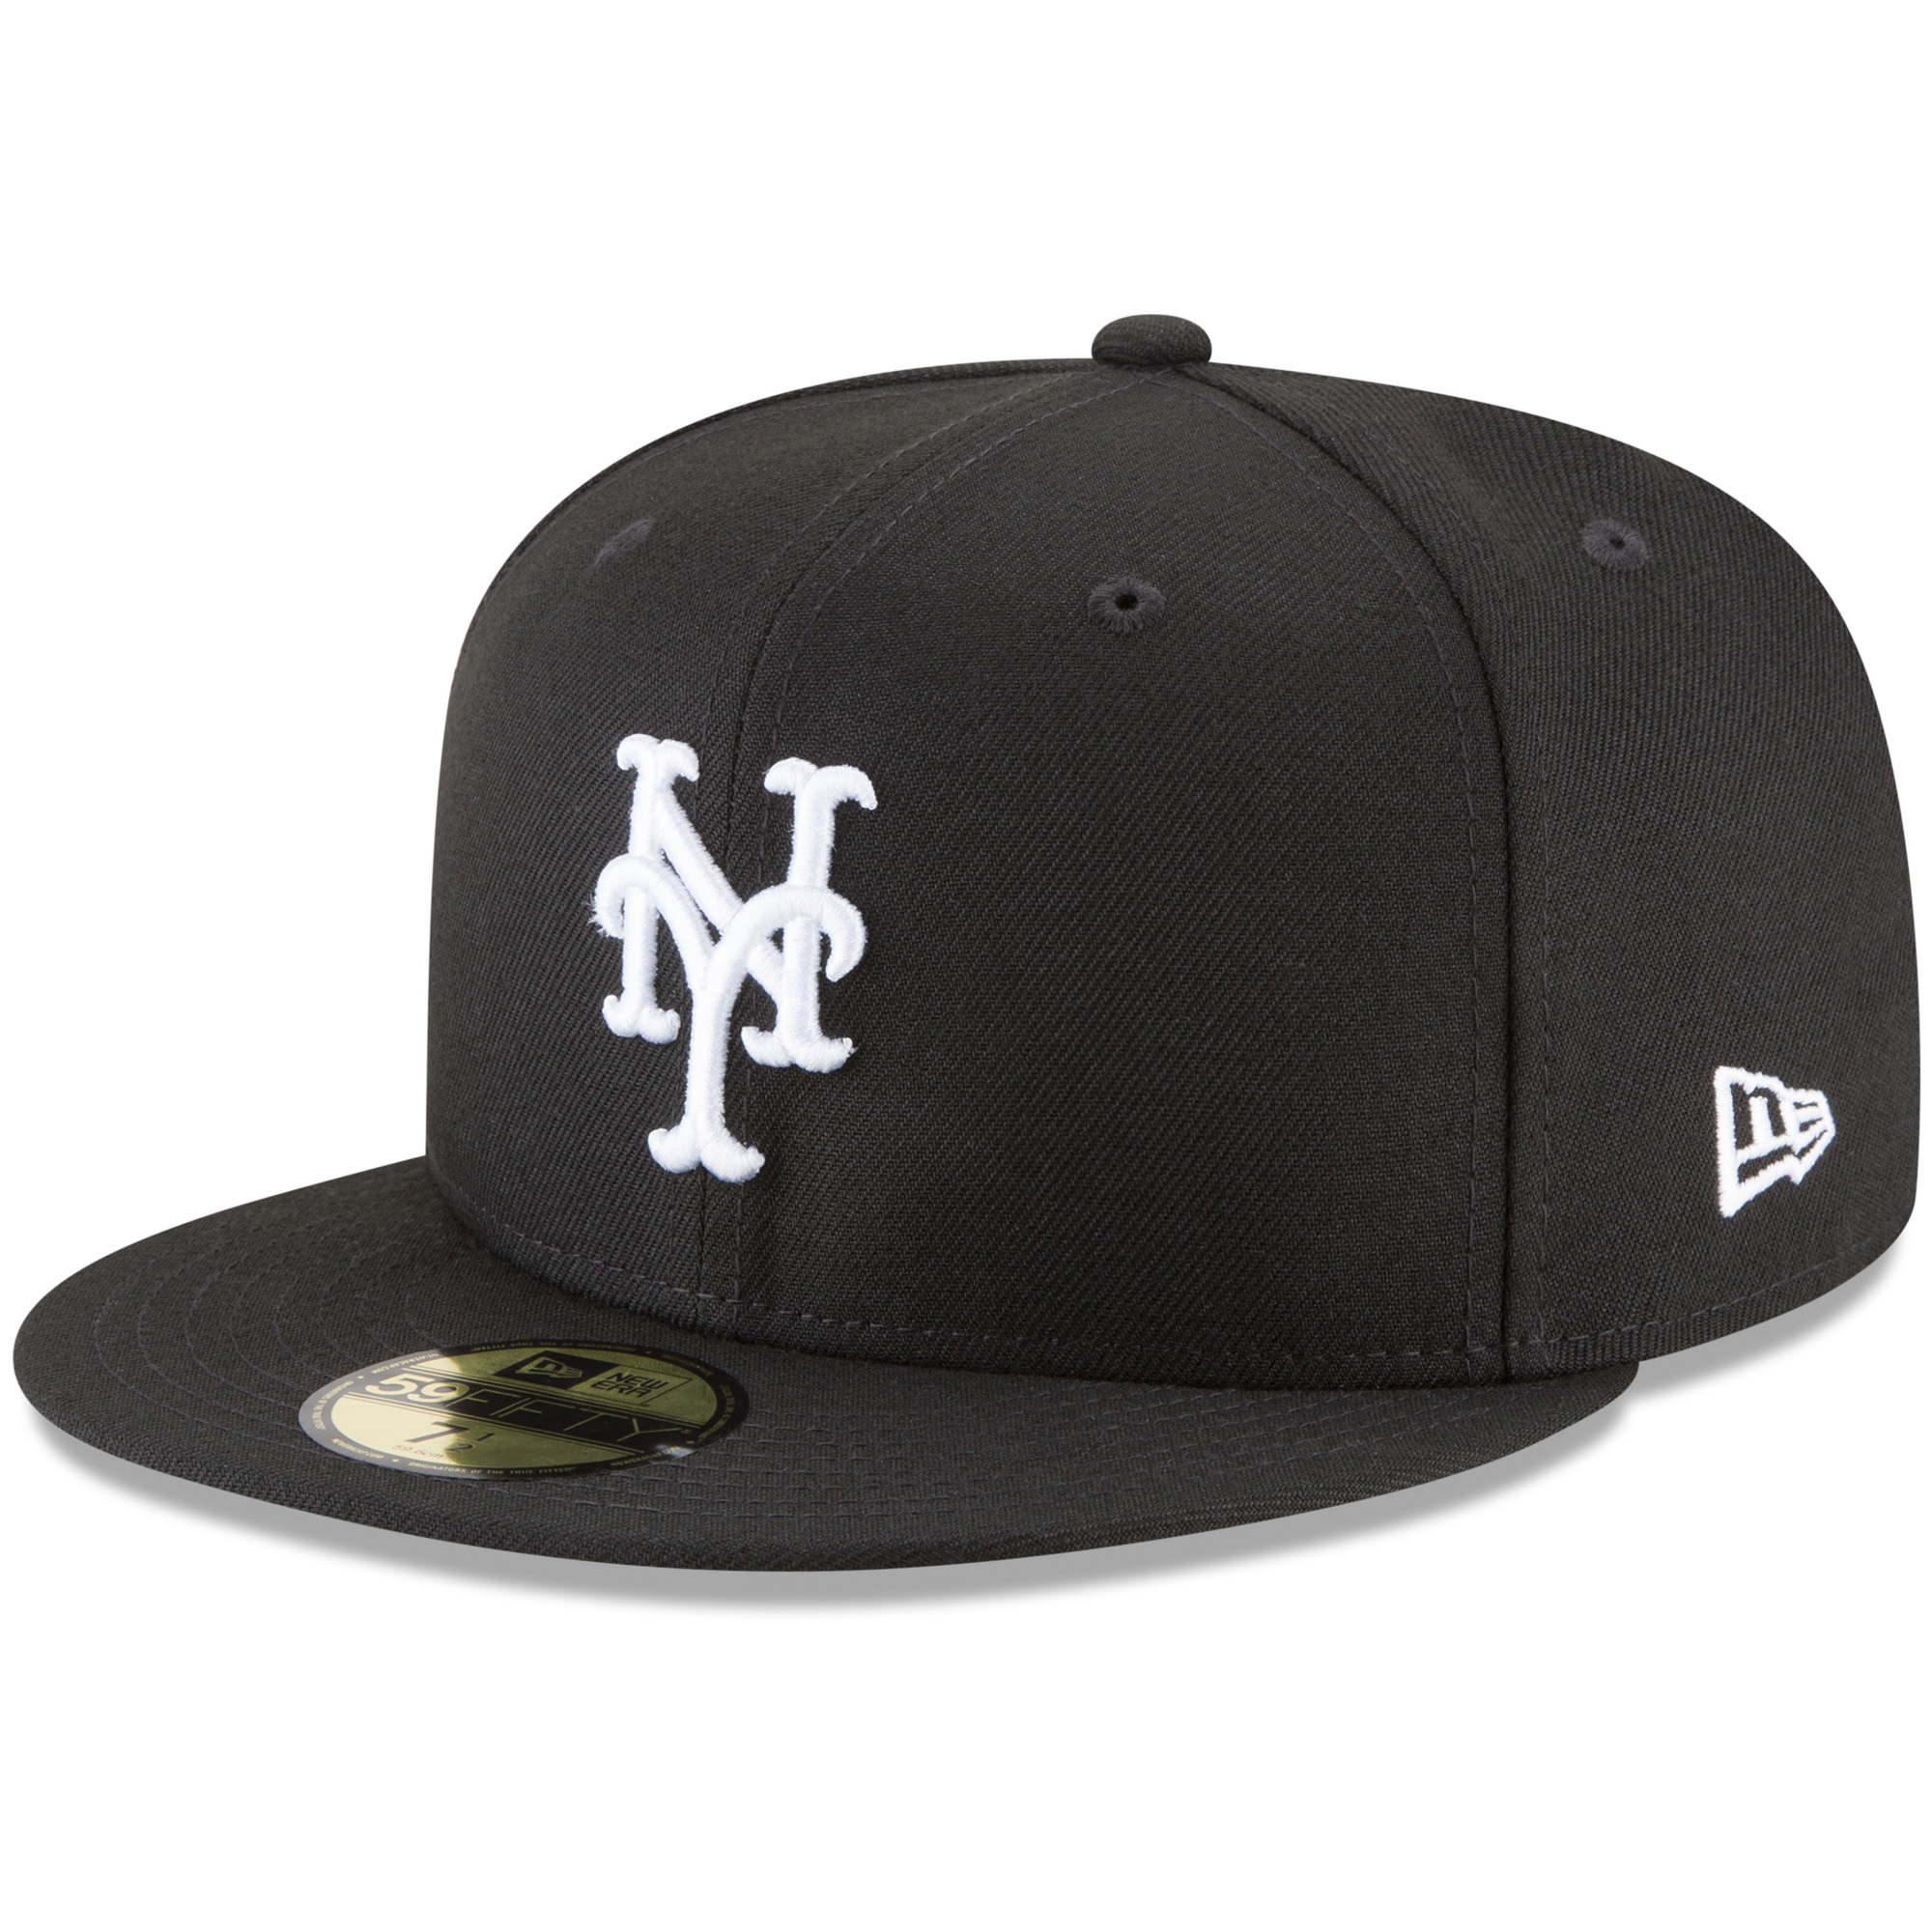 New York Mets New Era Basic 59FIFTY Fitted Hat - Black